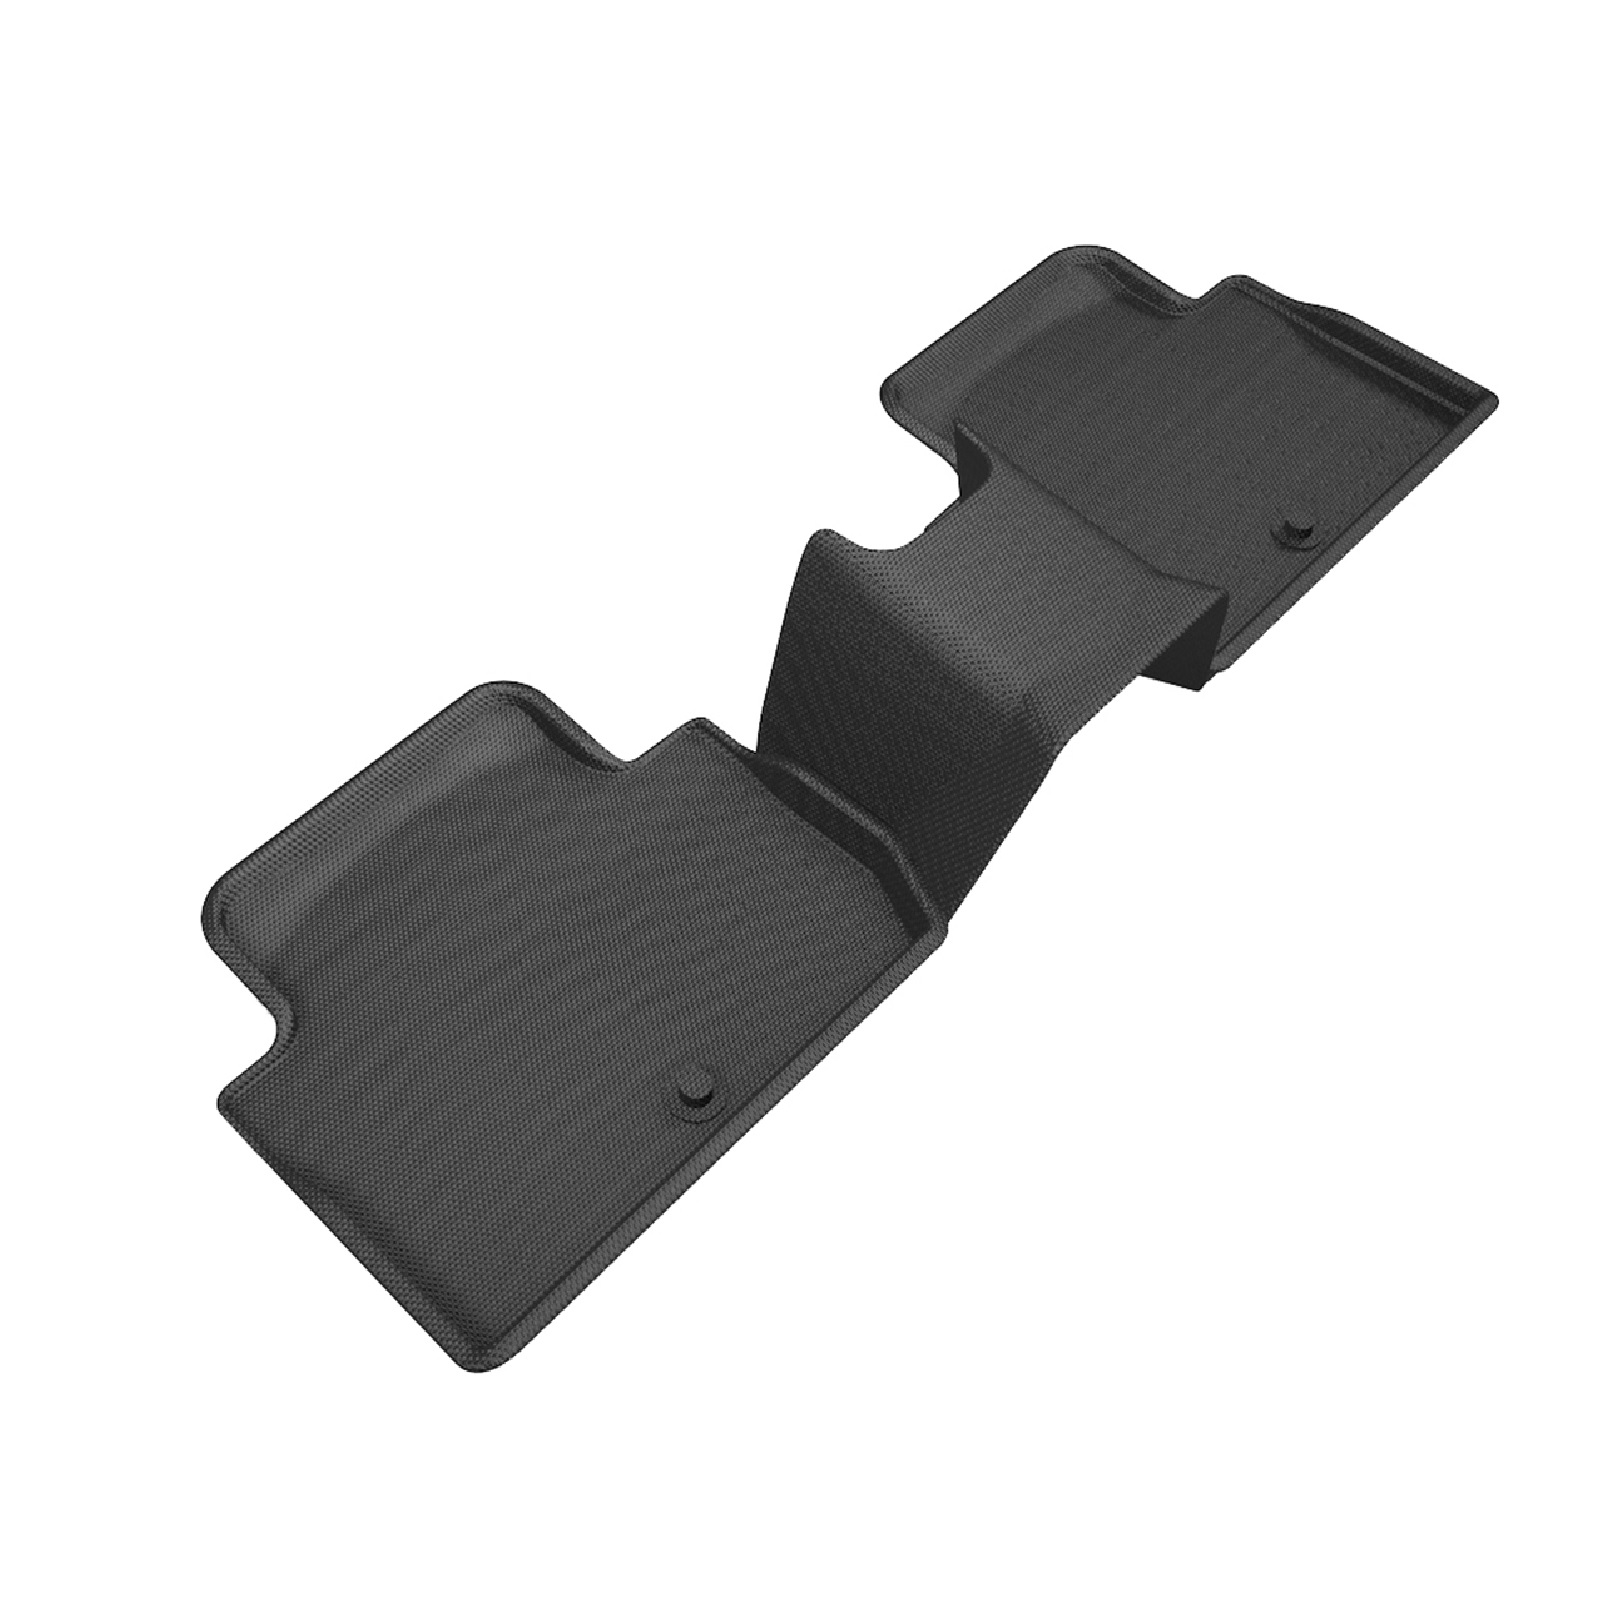 automotive fit amazon kagu floor maxpider mats mat black for ford com rubber row custom models front mustang select dp